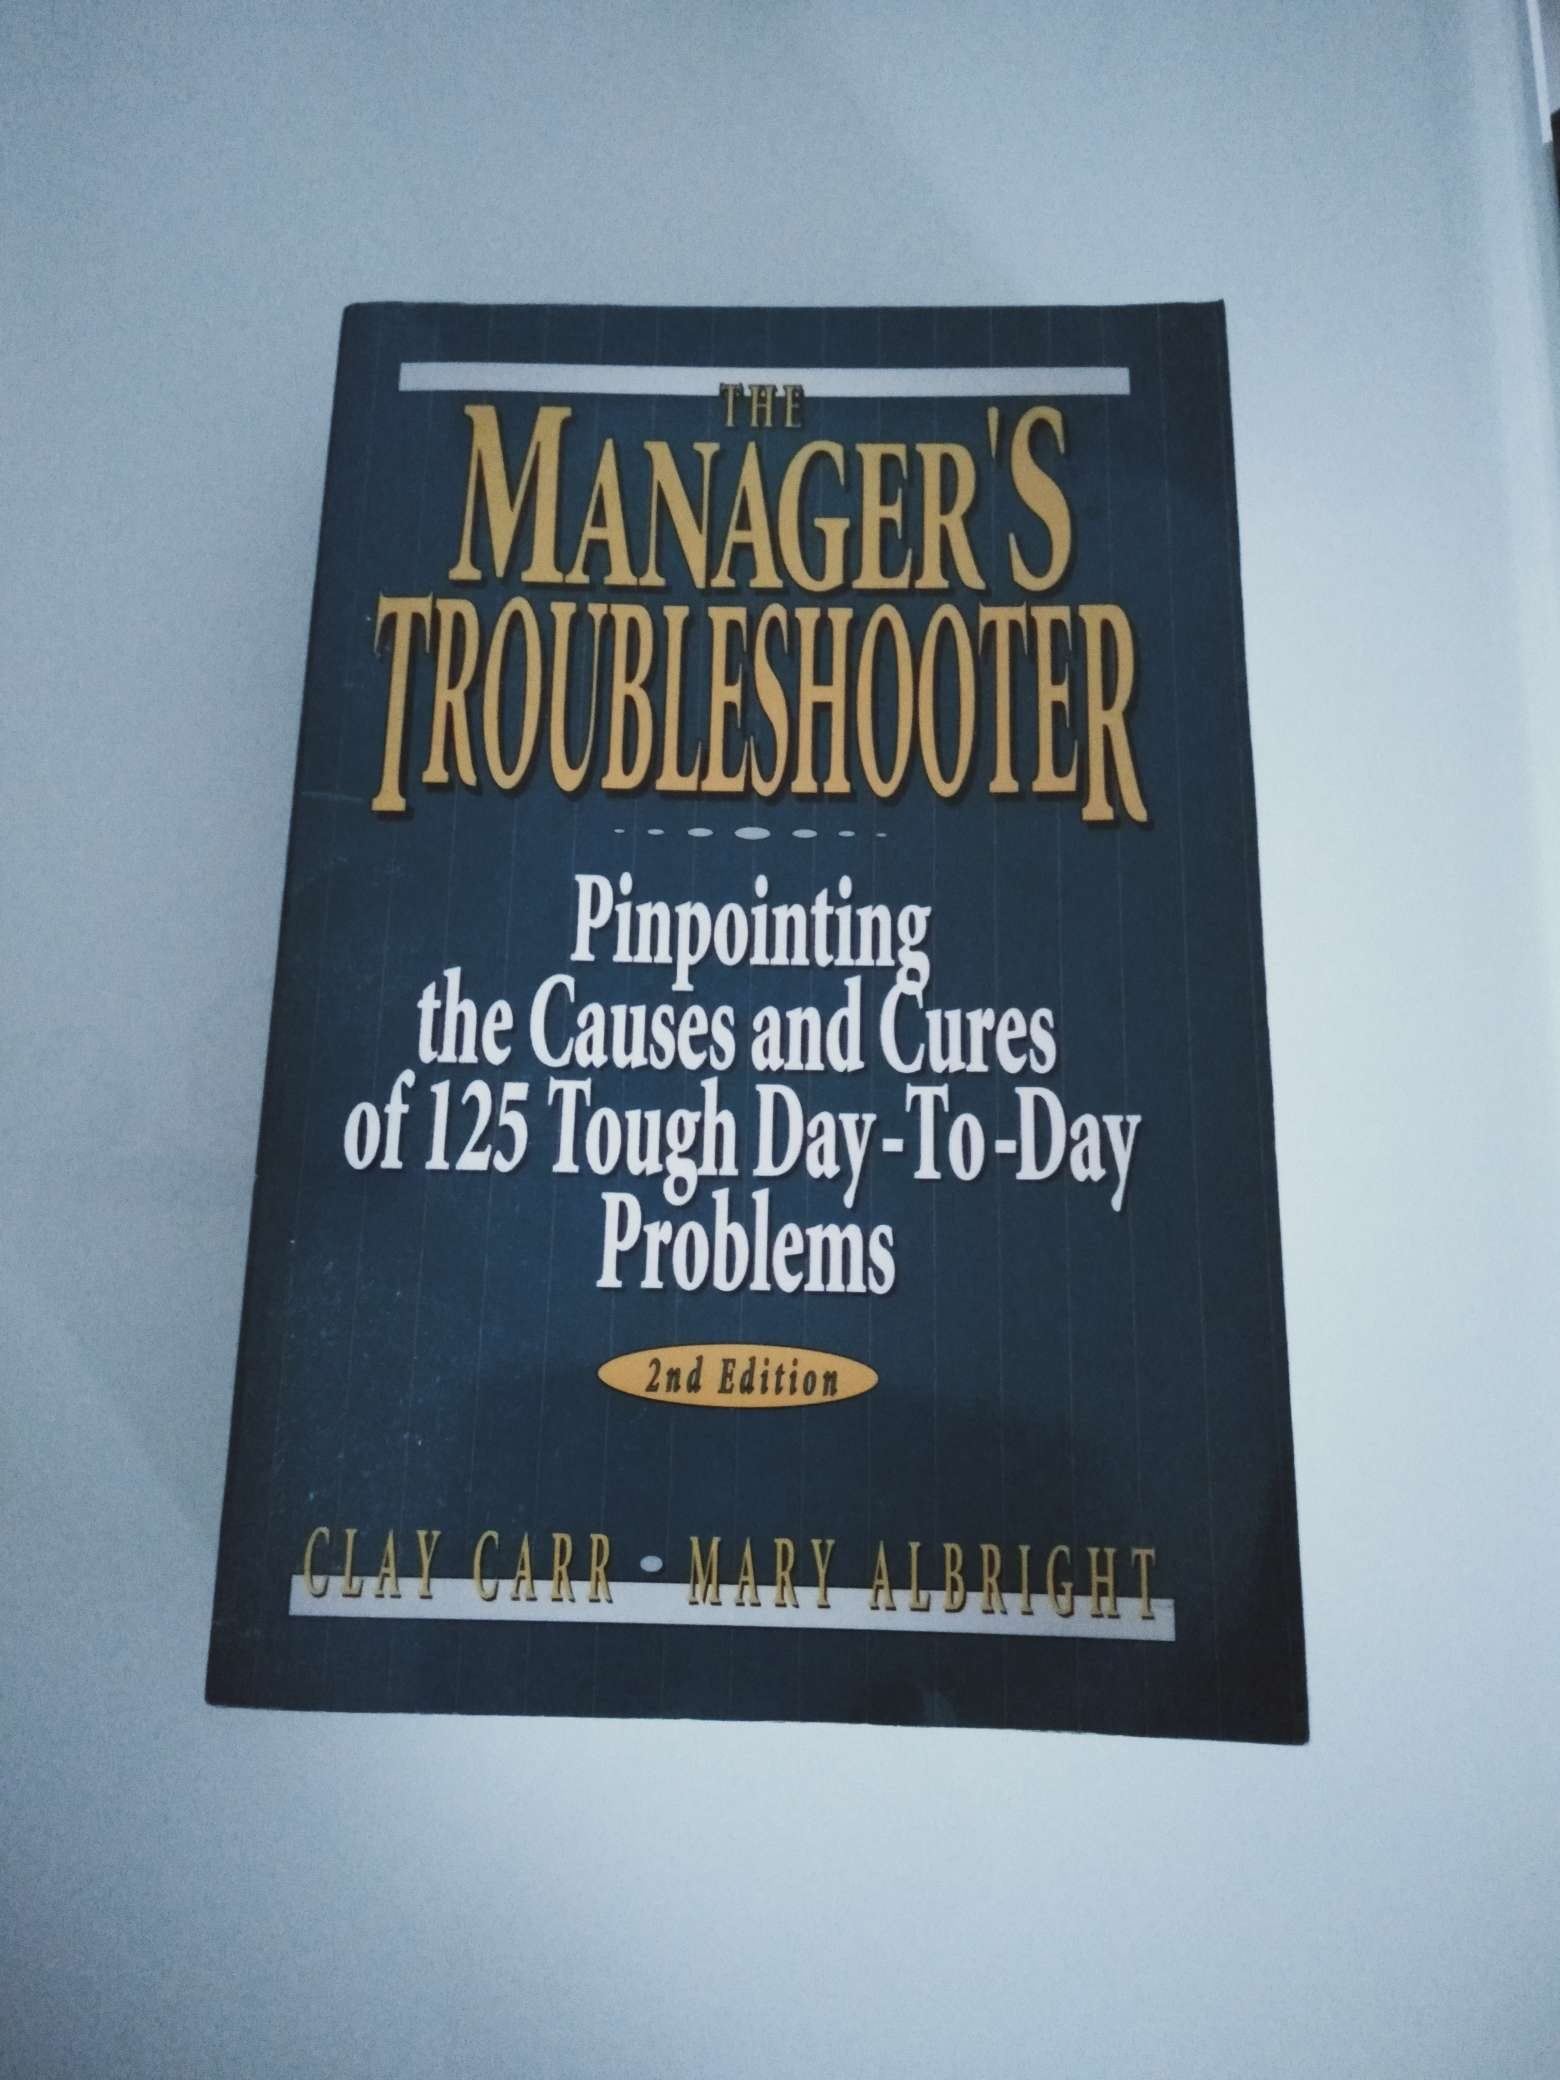 The Manager's Troubleshooter